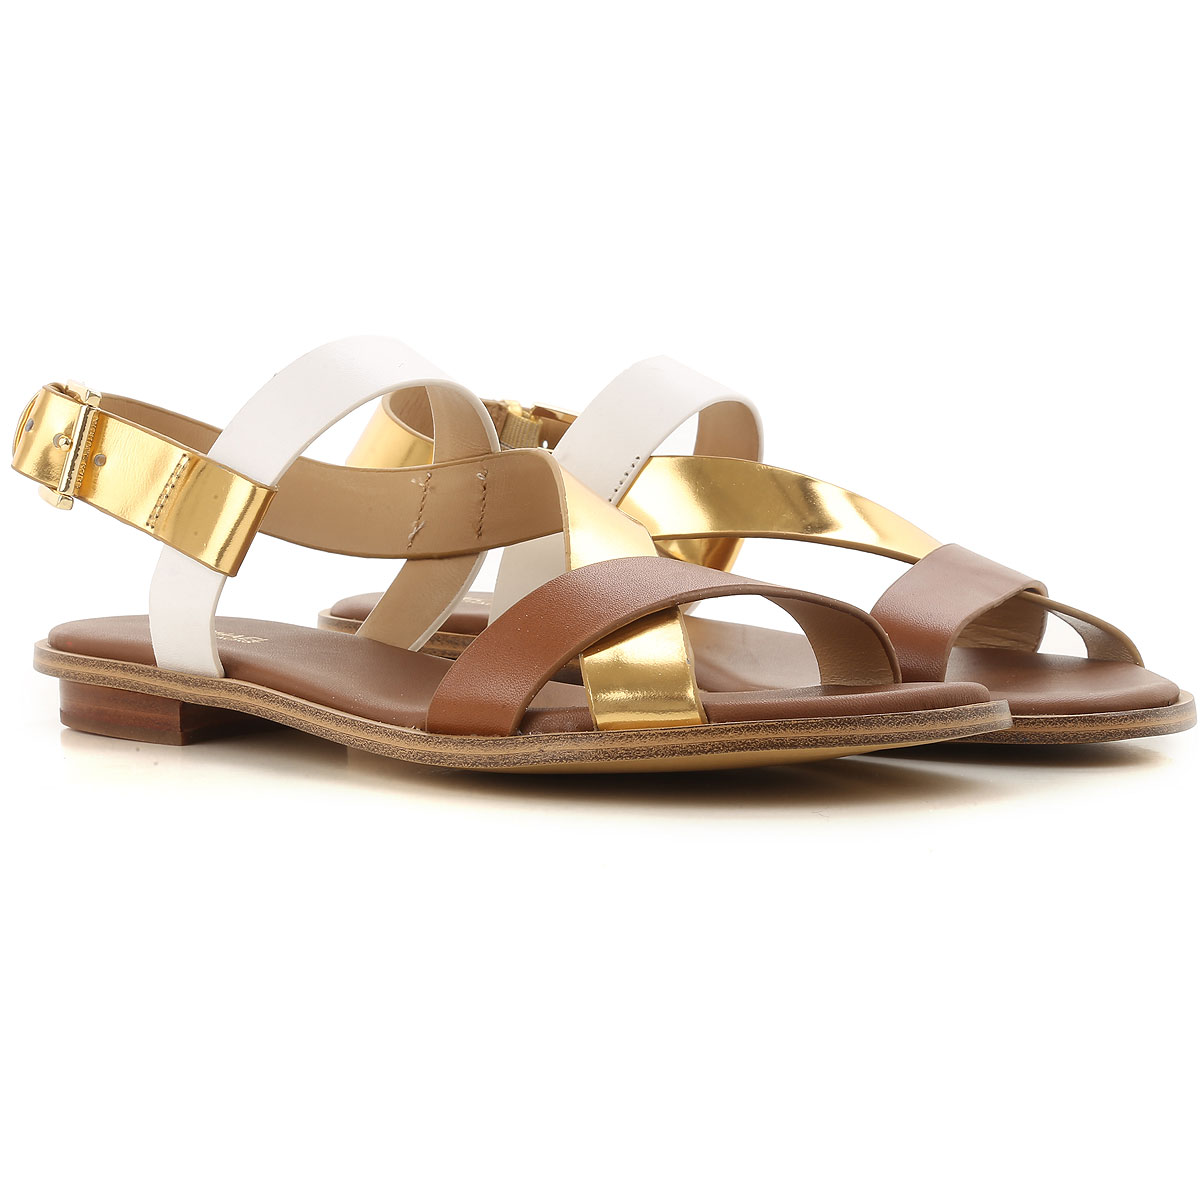 Image of Michael Kors Flip Flops Flat Sandals Womens On Sale, brown leather, Leather, 2017, 10 11 6.5 8 8.5